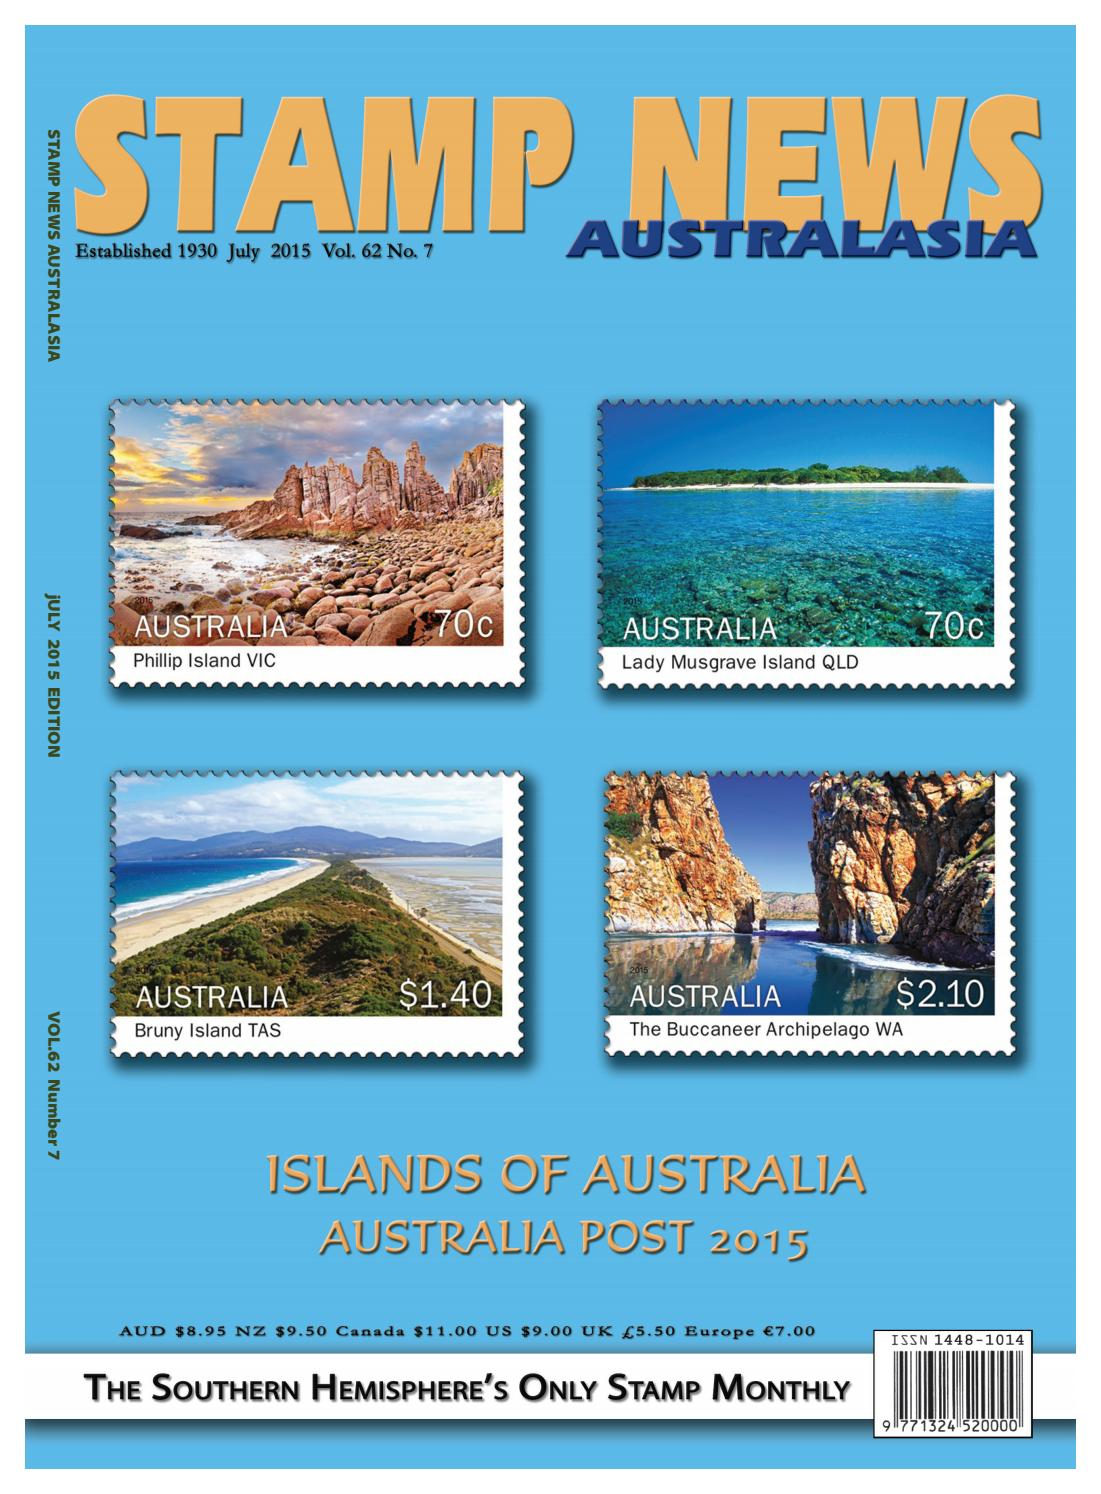 6918a94ad6 Stamp News Australasia - July 2015 by Stamp News Australasia - issuu